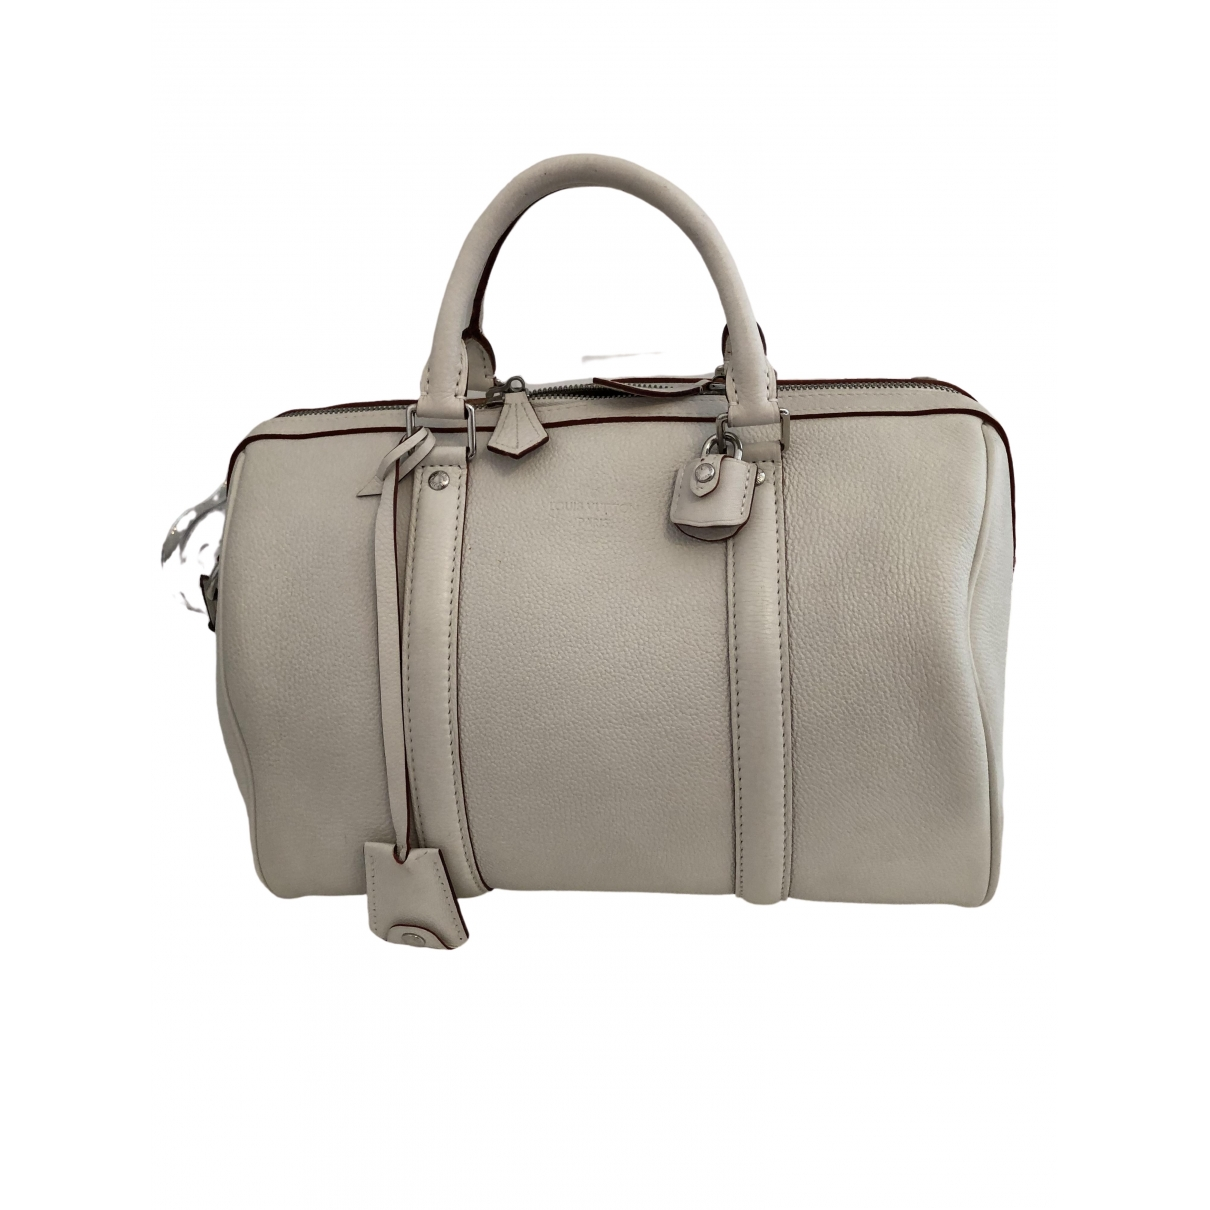 Louis Vuitton Sofia Coppola Beige Leather handbag for Women \N